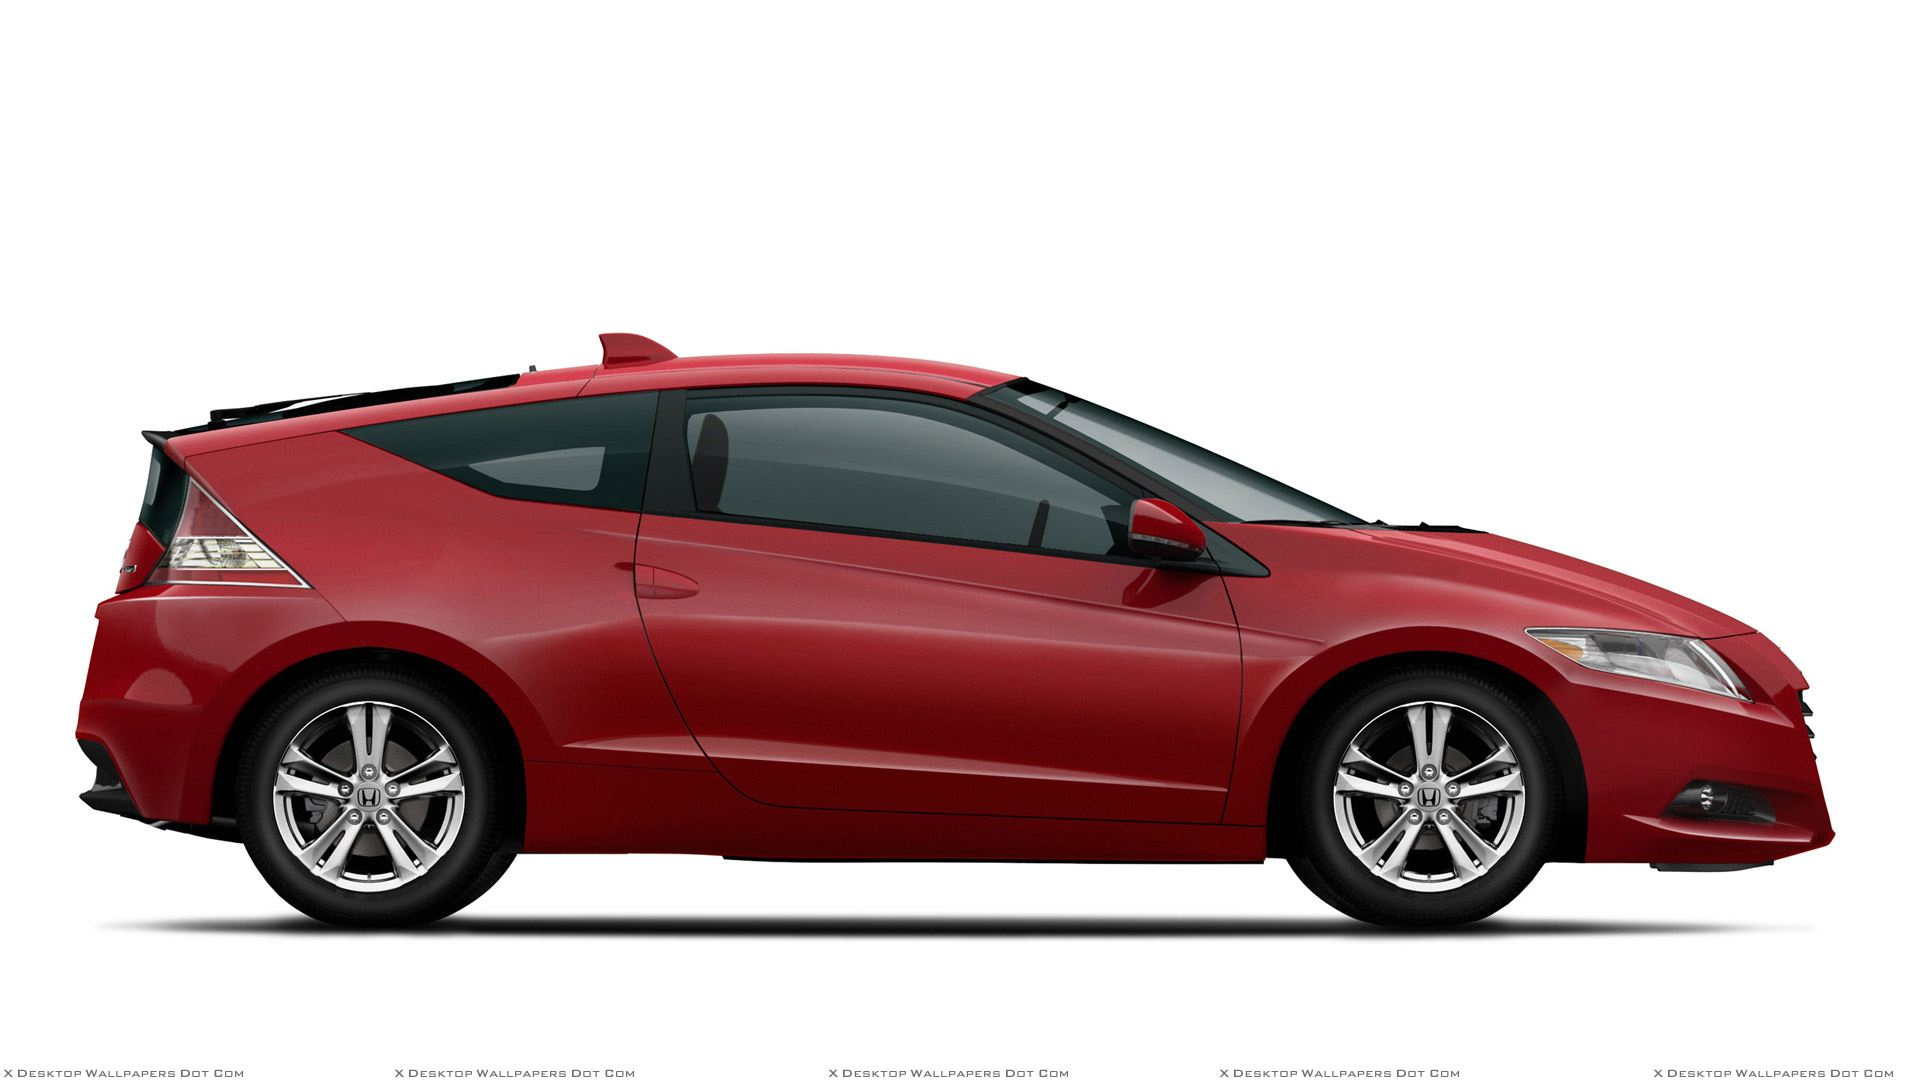 Side Pose Of 2011 Honda CR-Z Sport Hybrid Coupe In Red N ...